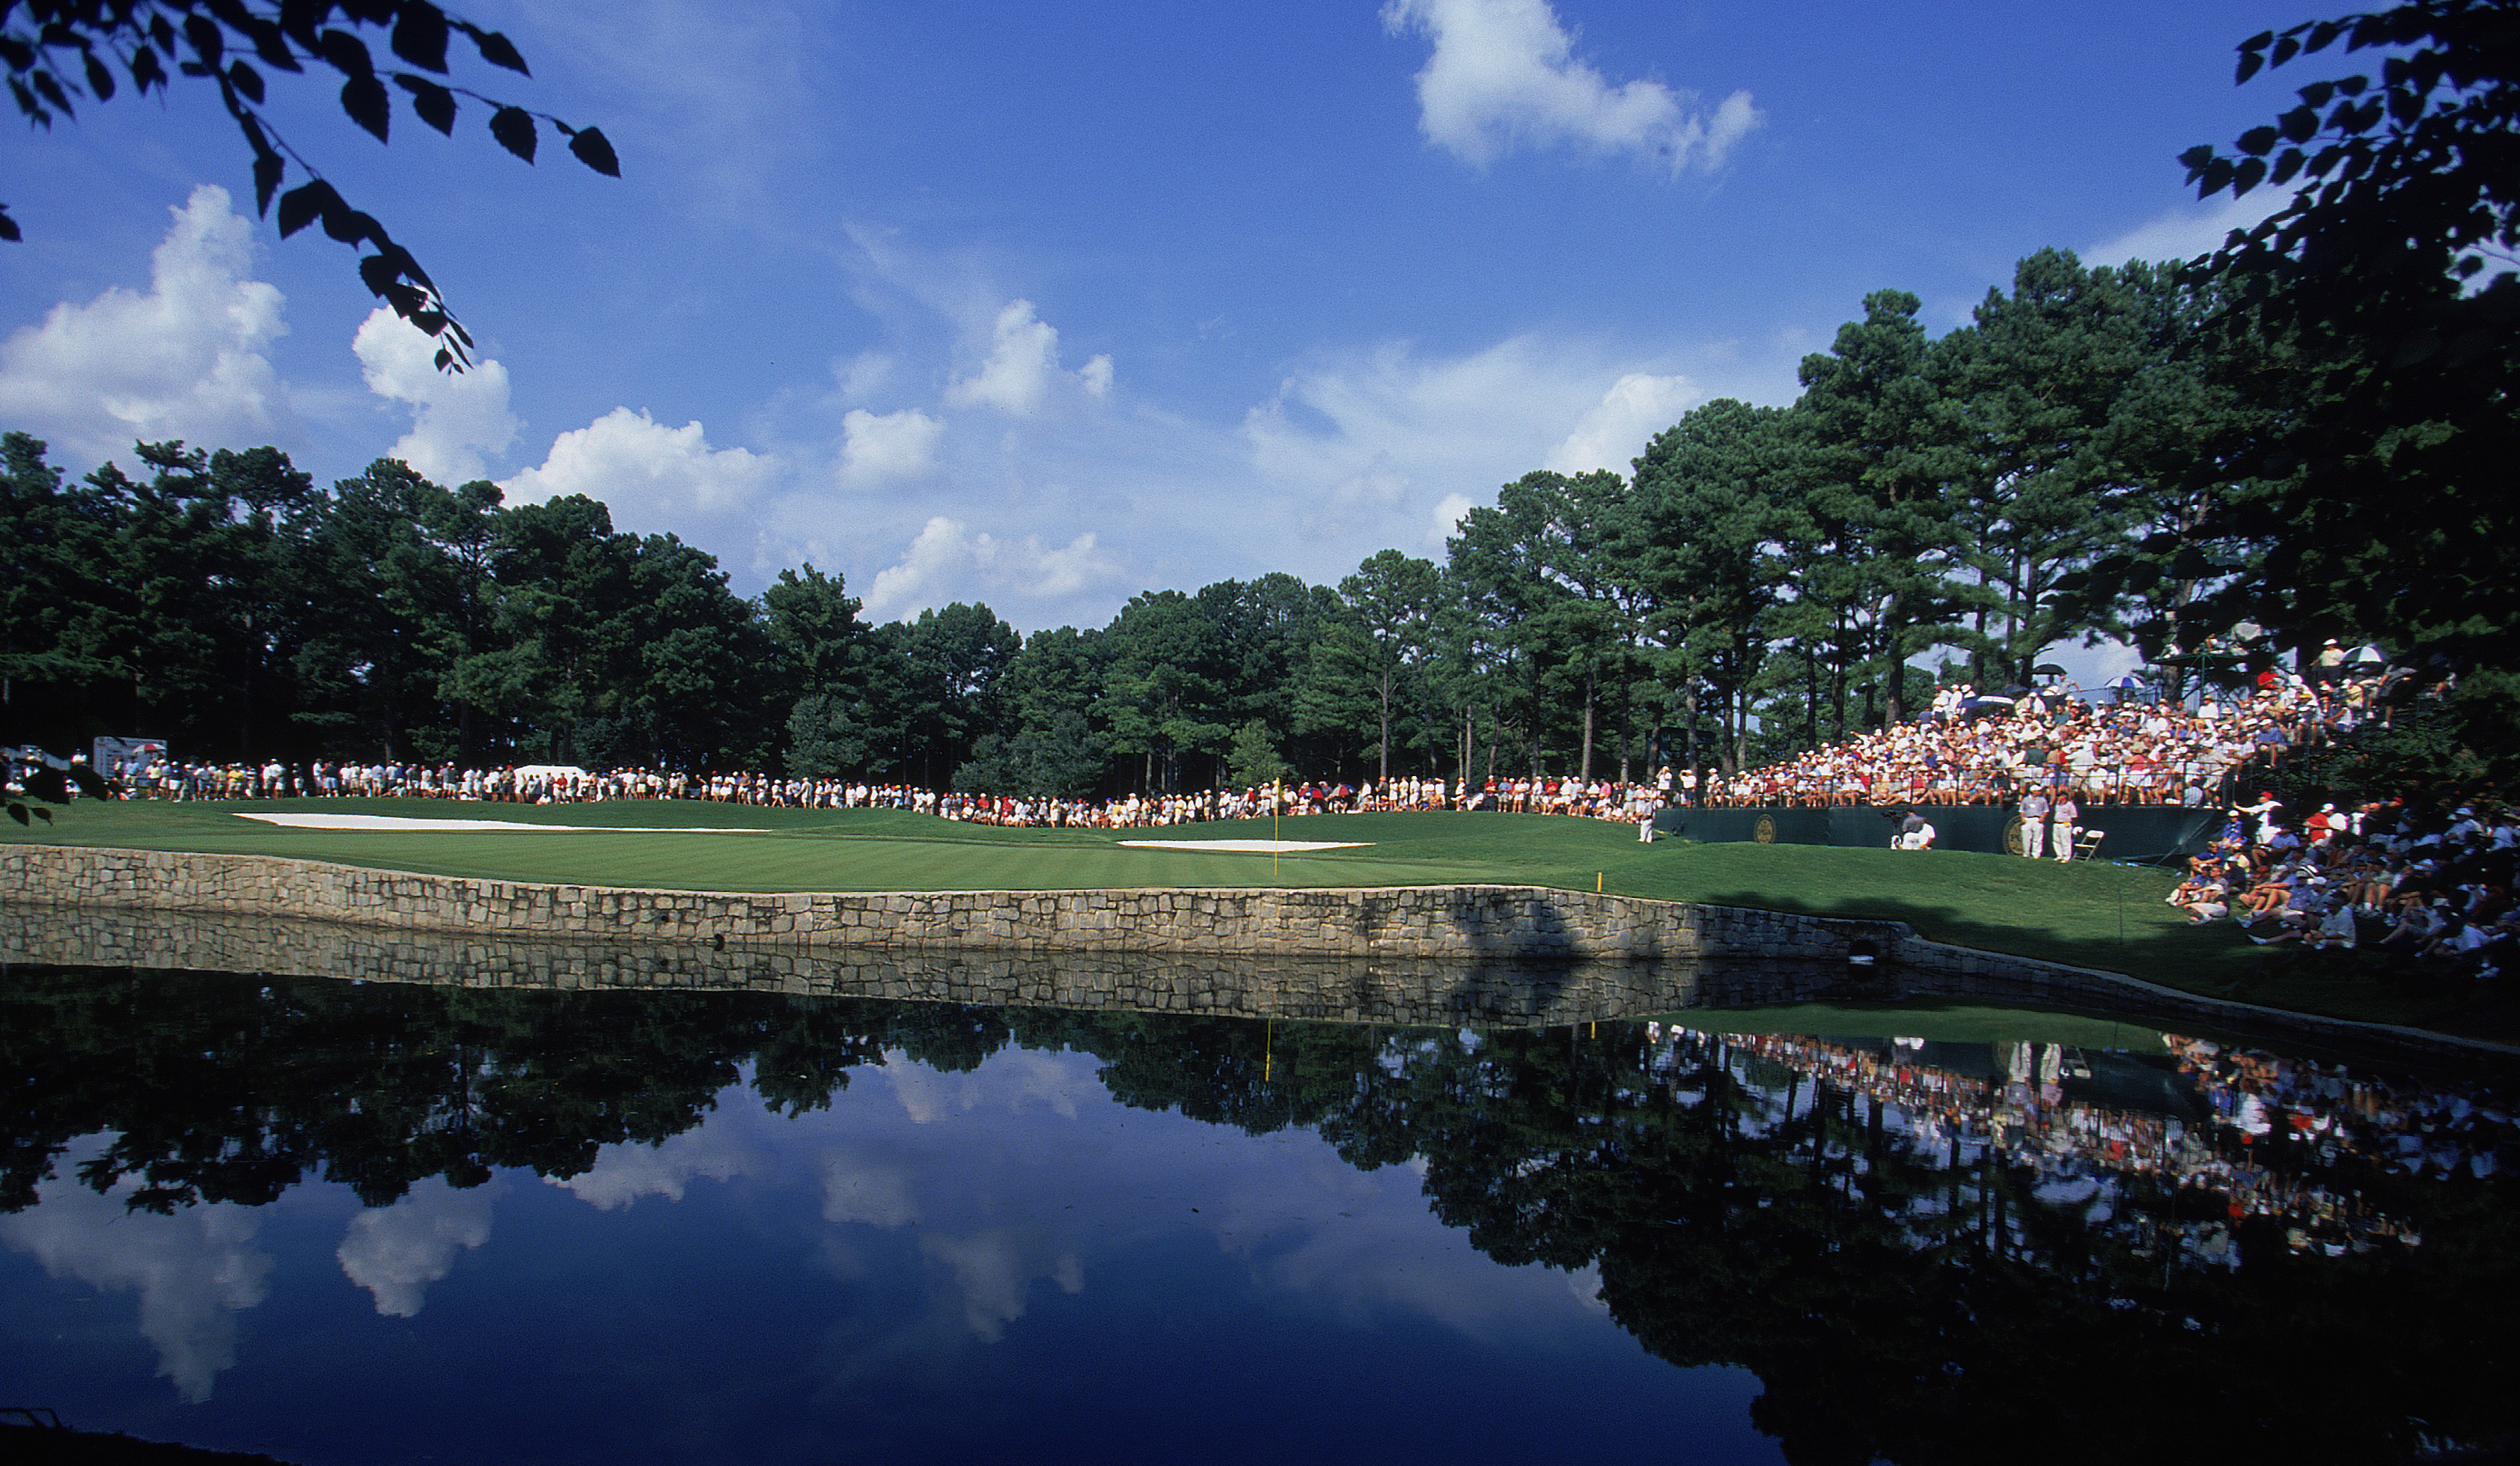 Atlanta Athletic Club during the 2001 PGA Championship.